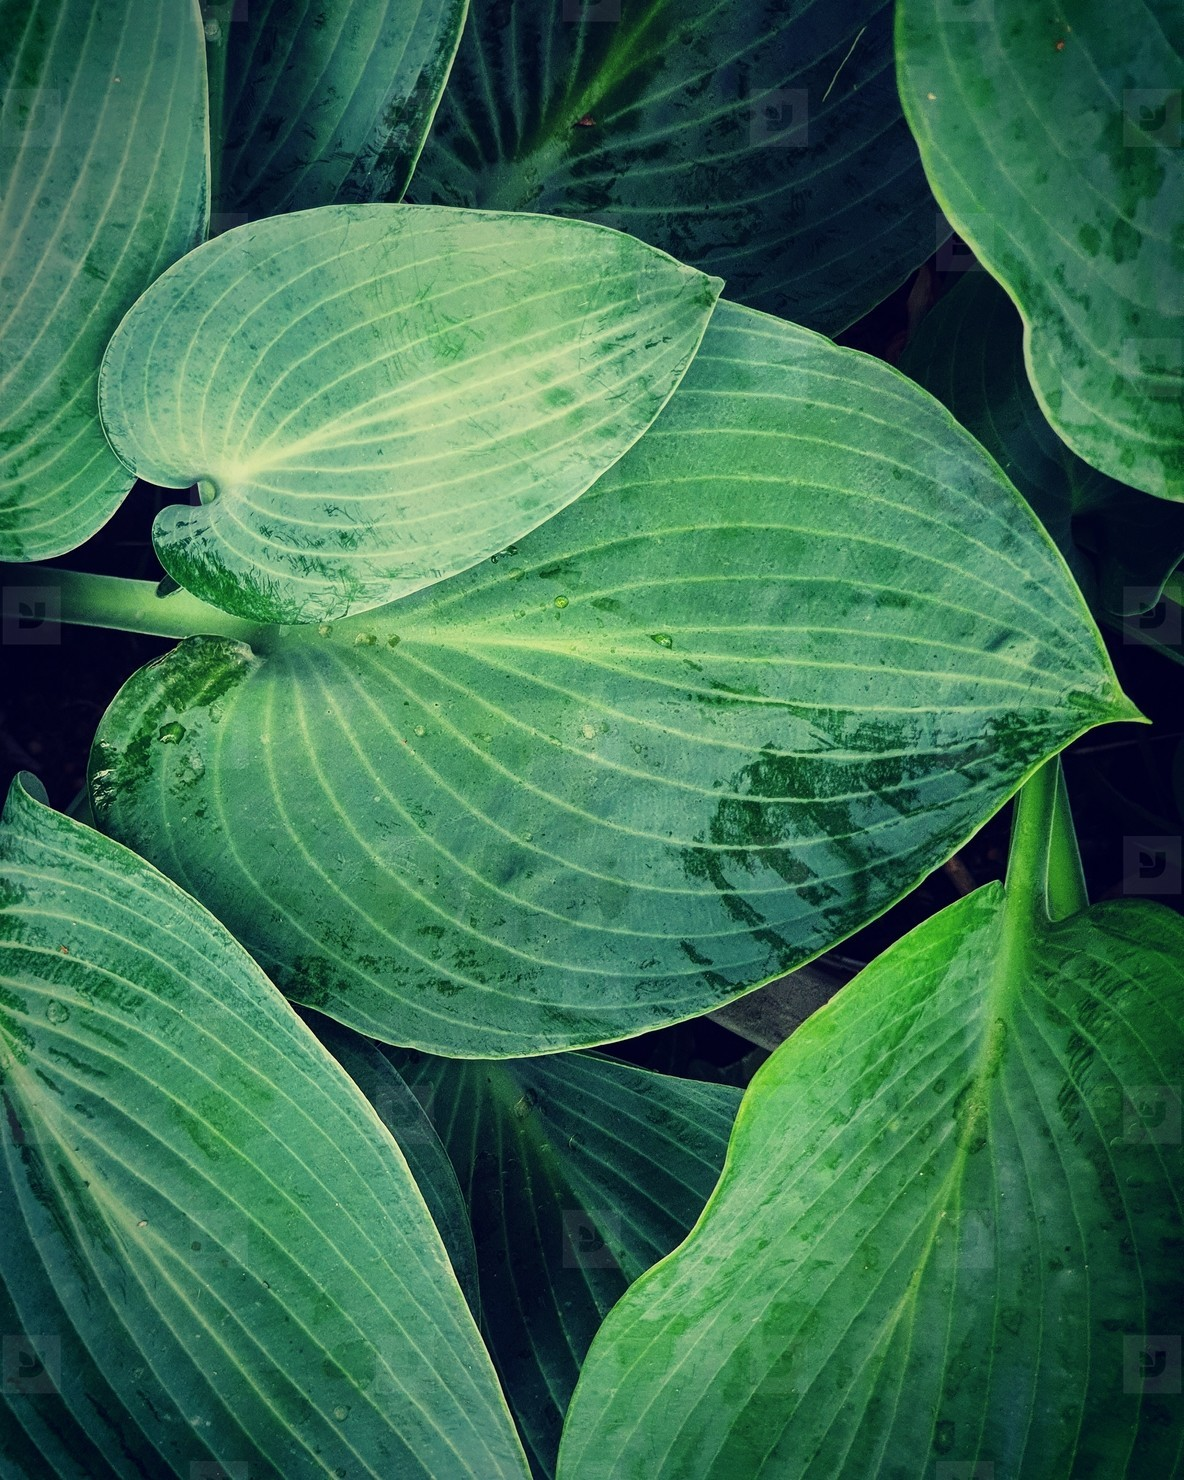 Green heart shaped leaves